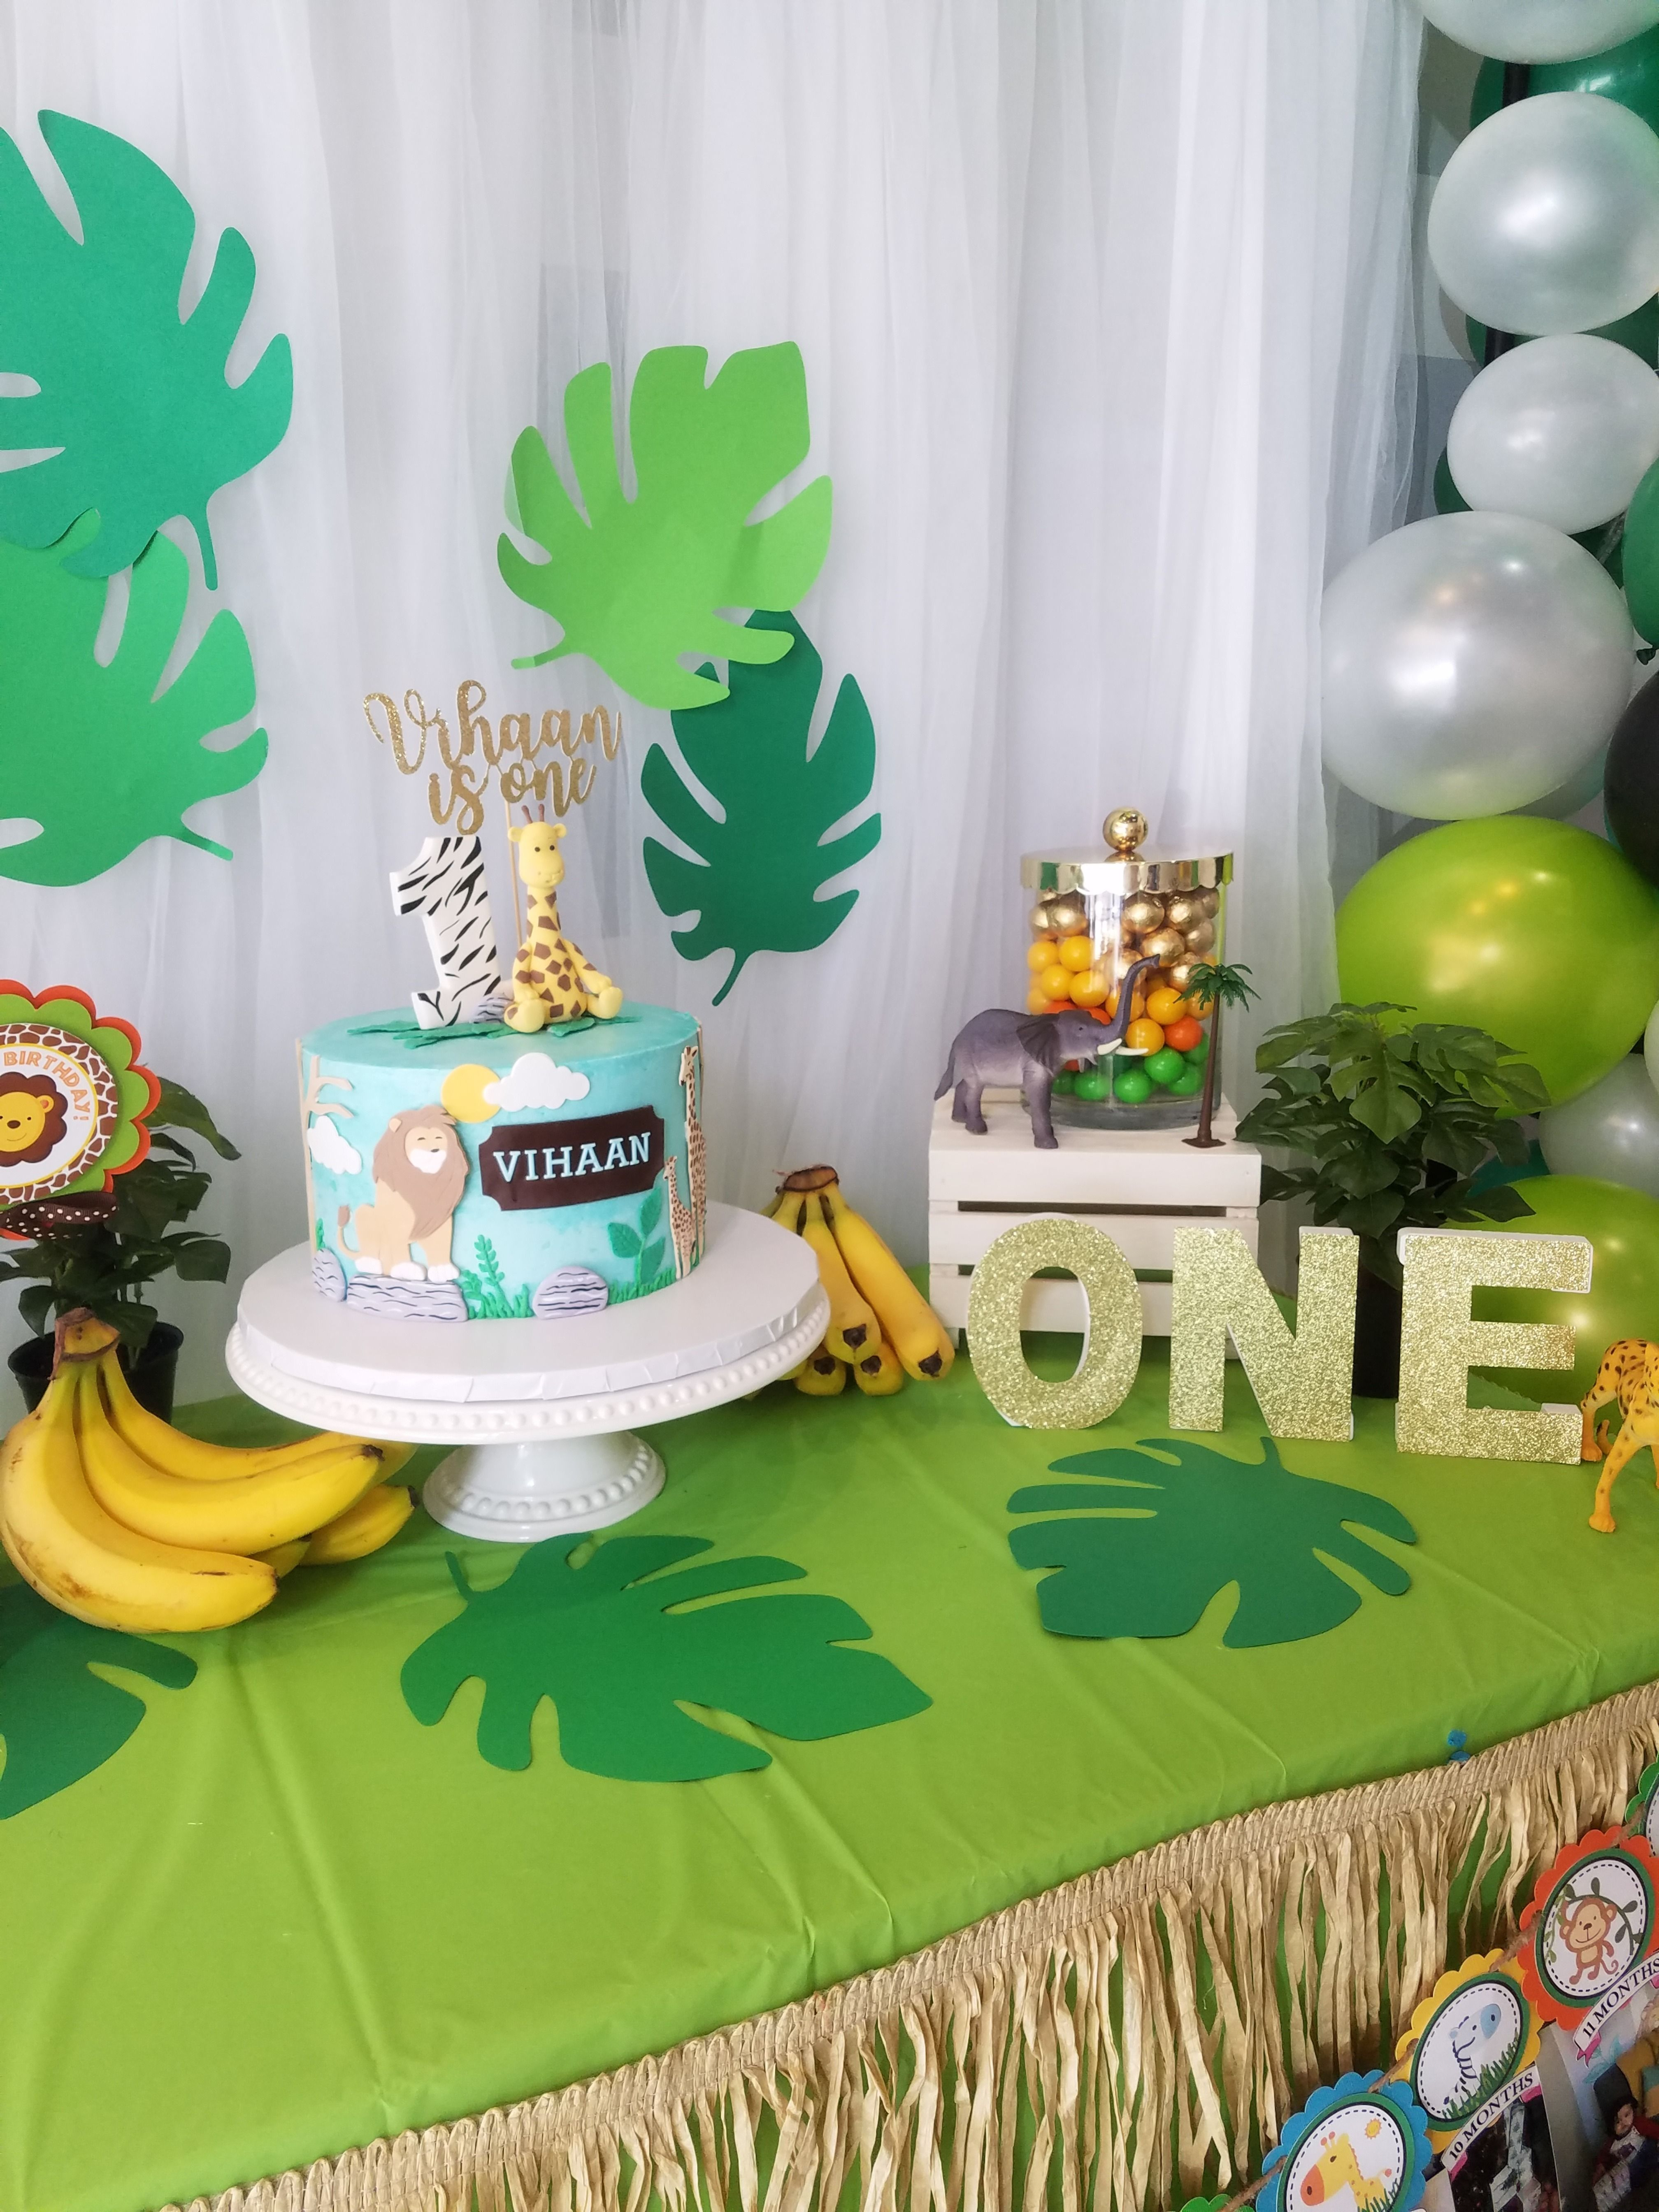 Jungle Theme Cake Table With Images Jungle Theme Cakes Themed